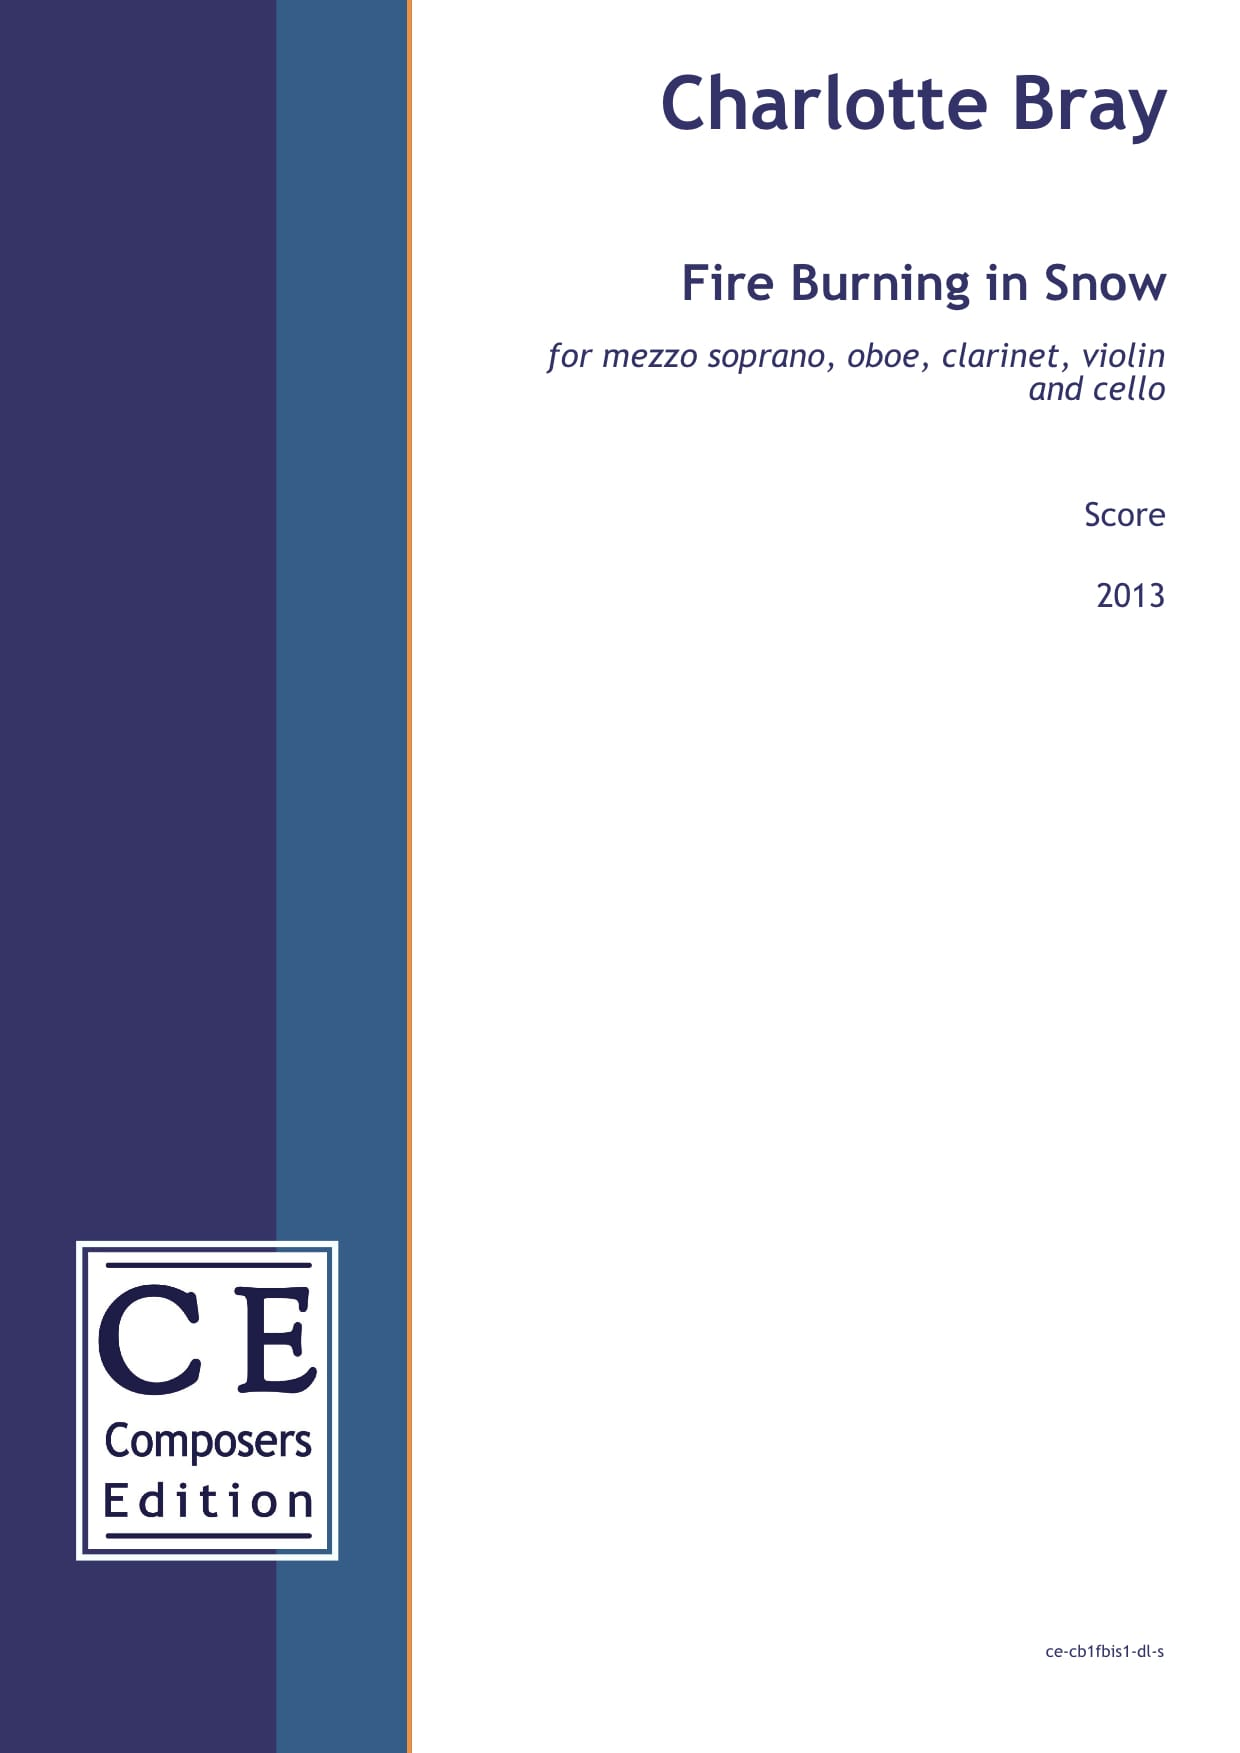 Charlotte Bray: Fire Burning in Snow for mezzo soprano, oboe, clarinet, violin and cello